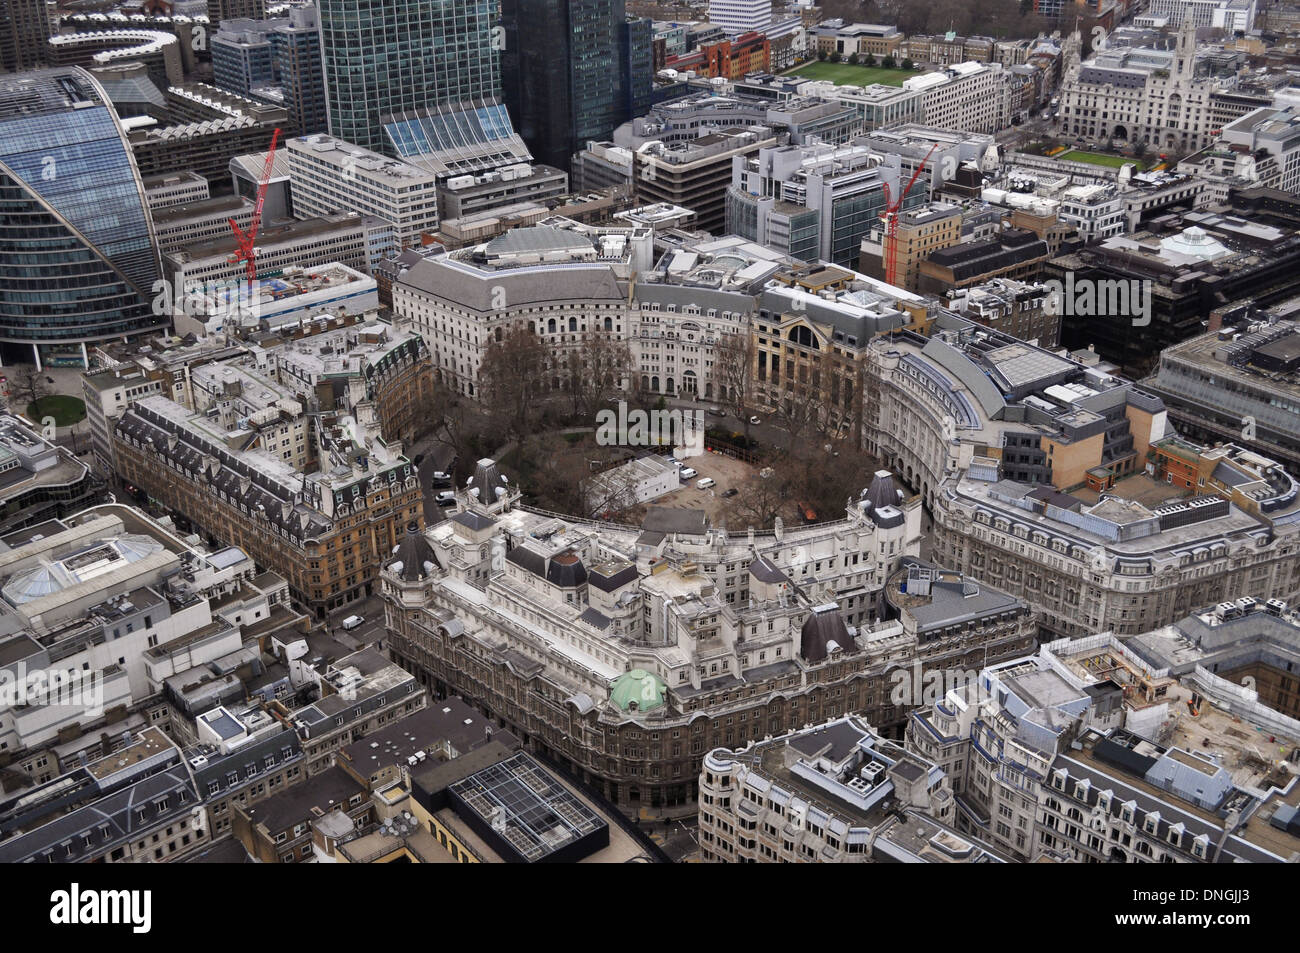 Aeriel view of Finsbury Circus in the City of London - Stock Image